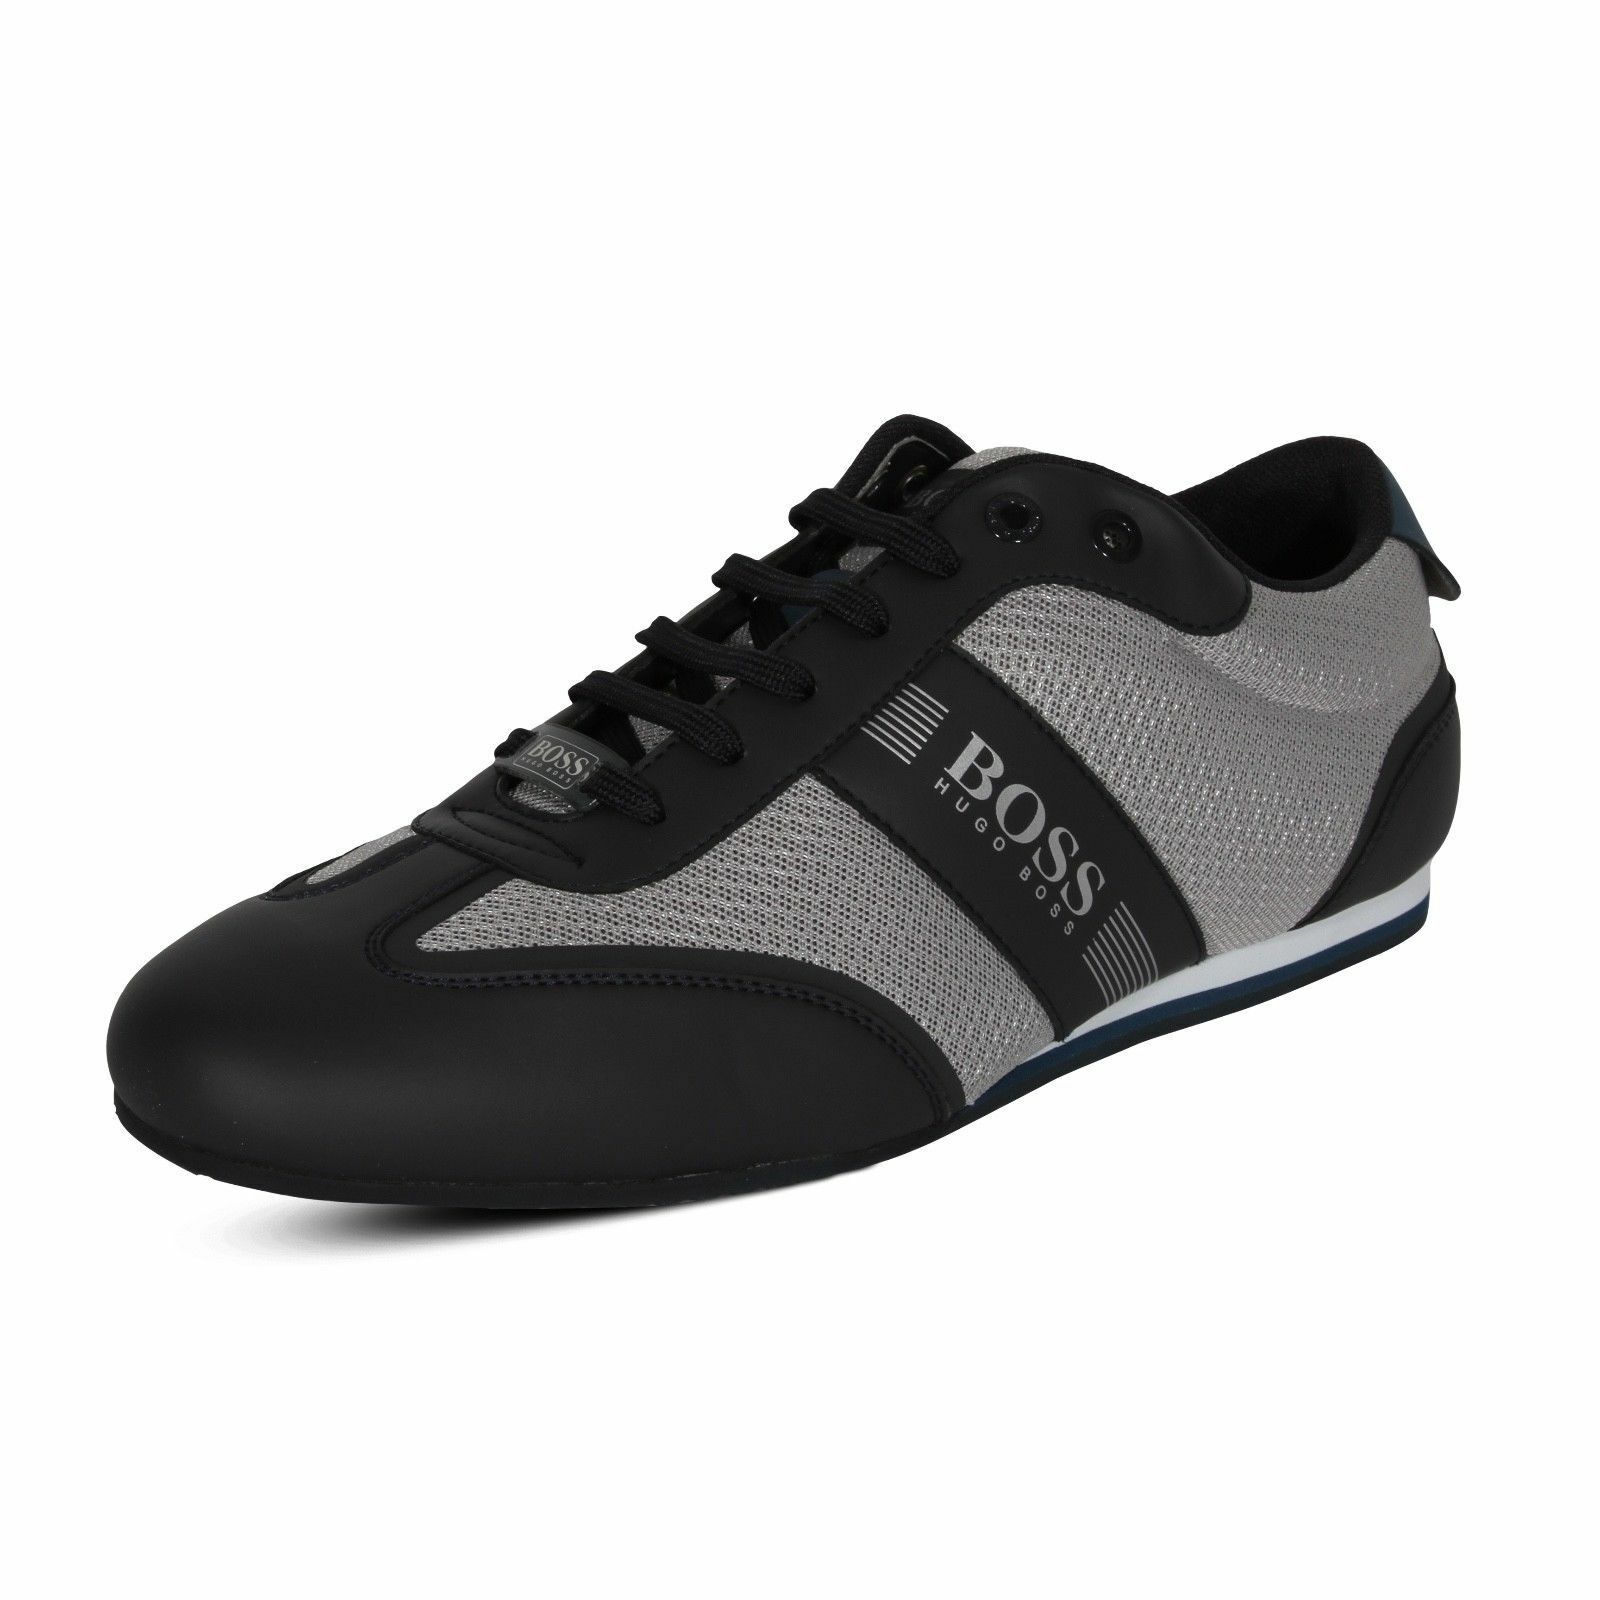 Hugo Boss Men's Lighter Lowp Mxme Fashion Sneaker shoes 50370438 067 Grey